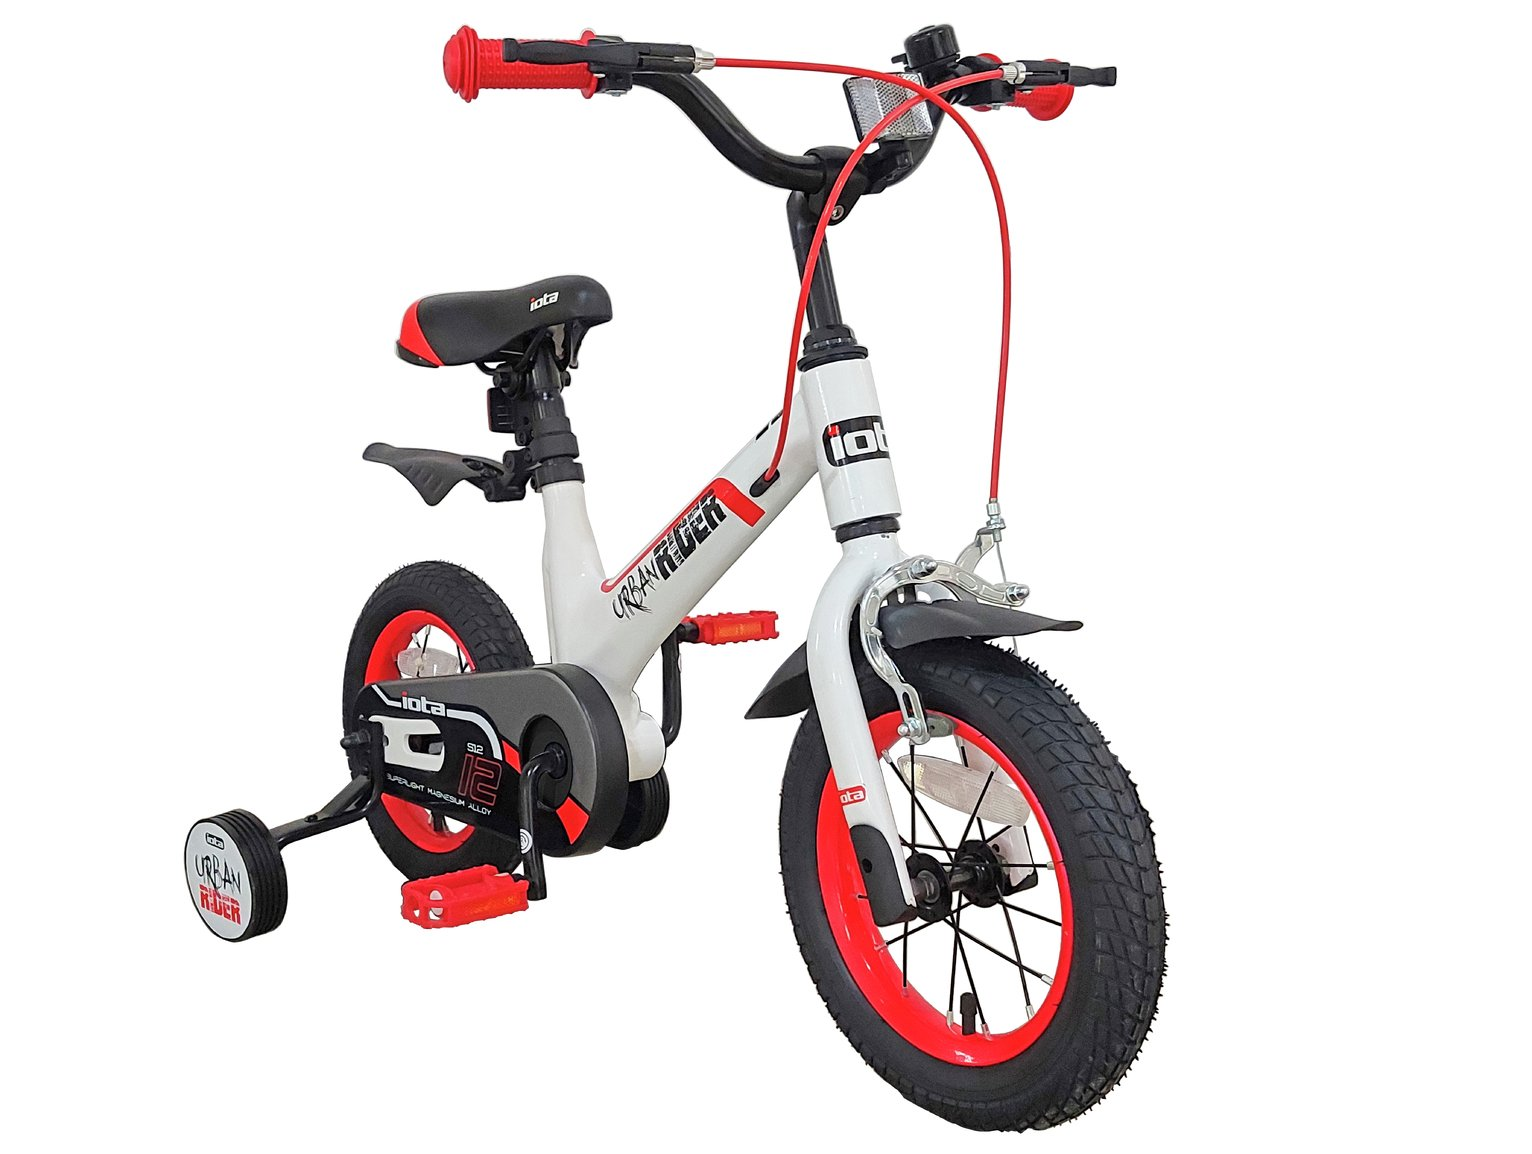 Iota 12 Inch Urban Rider Kid's Bike